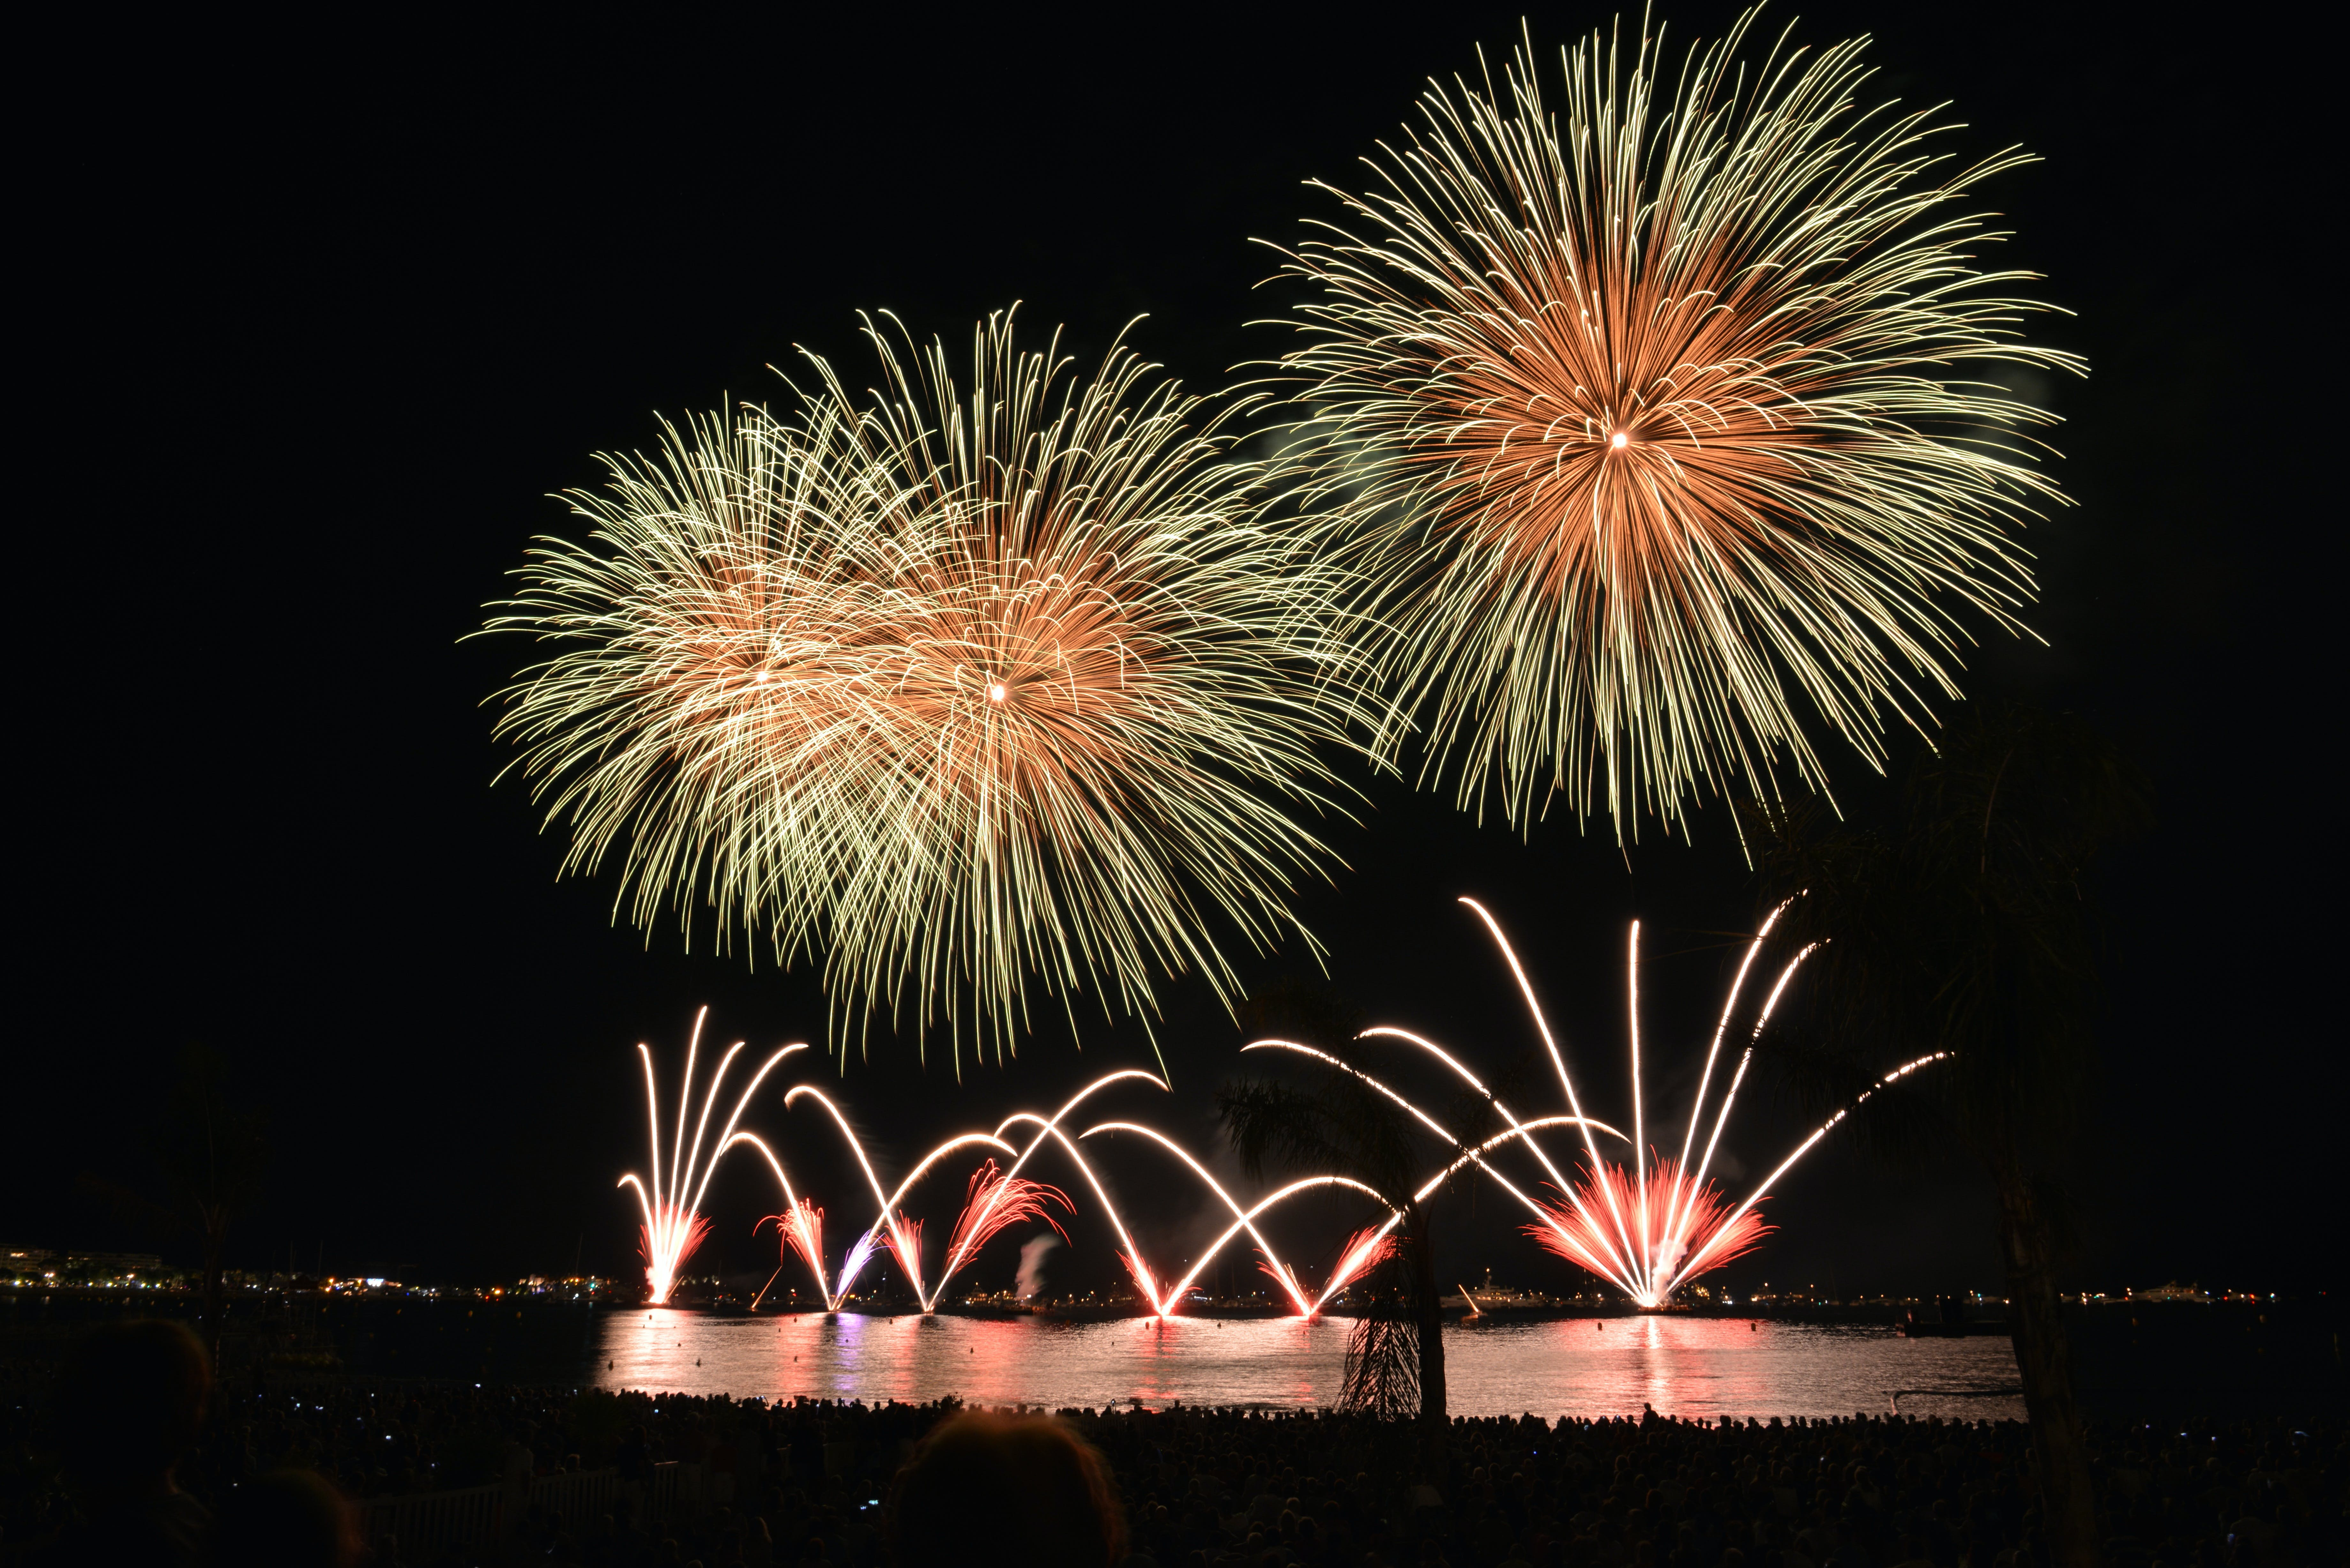 Yellow Orange and Red Fireworks during Nighttime